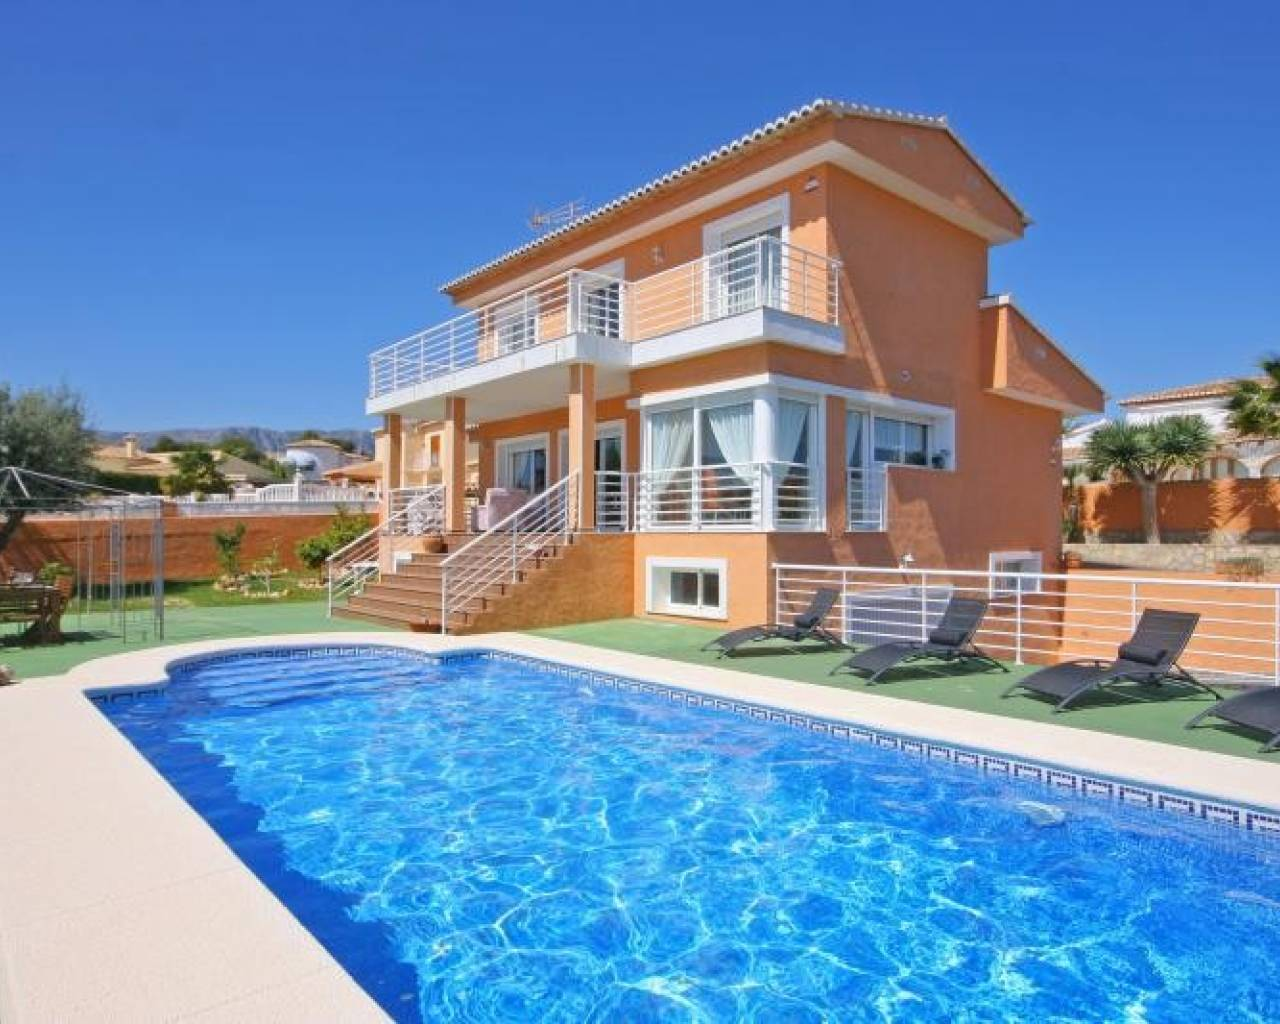 Villa - Resale - Calpe - Merced